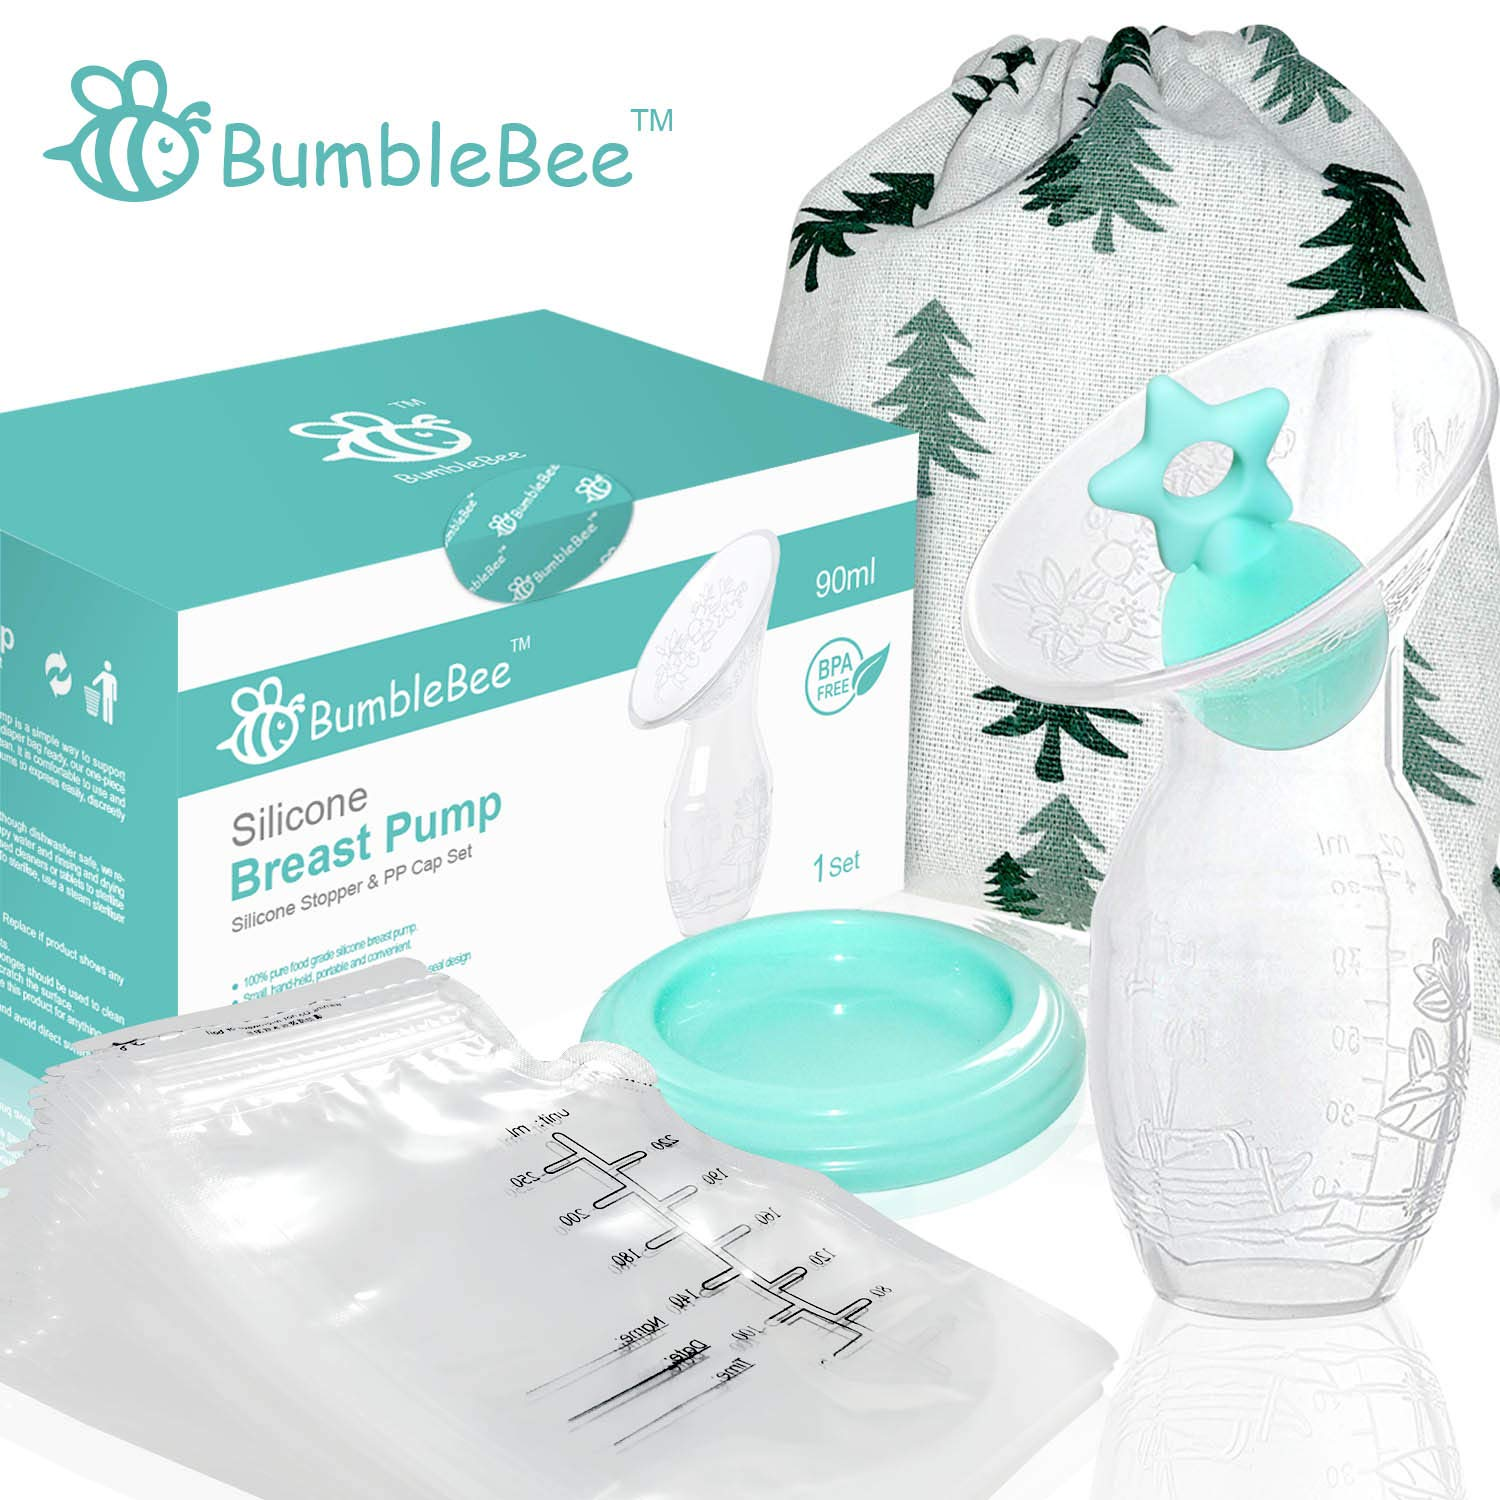 Bumblebee Manual Breast Pump with 30PCS Milk Storage Bags Breastfeeding Collection Milk Pump with Star Shape Silicone Stopper with lid in Gift Box Bpa Free &Food Grade Silicone Breast Pump by Bumblebee